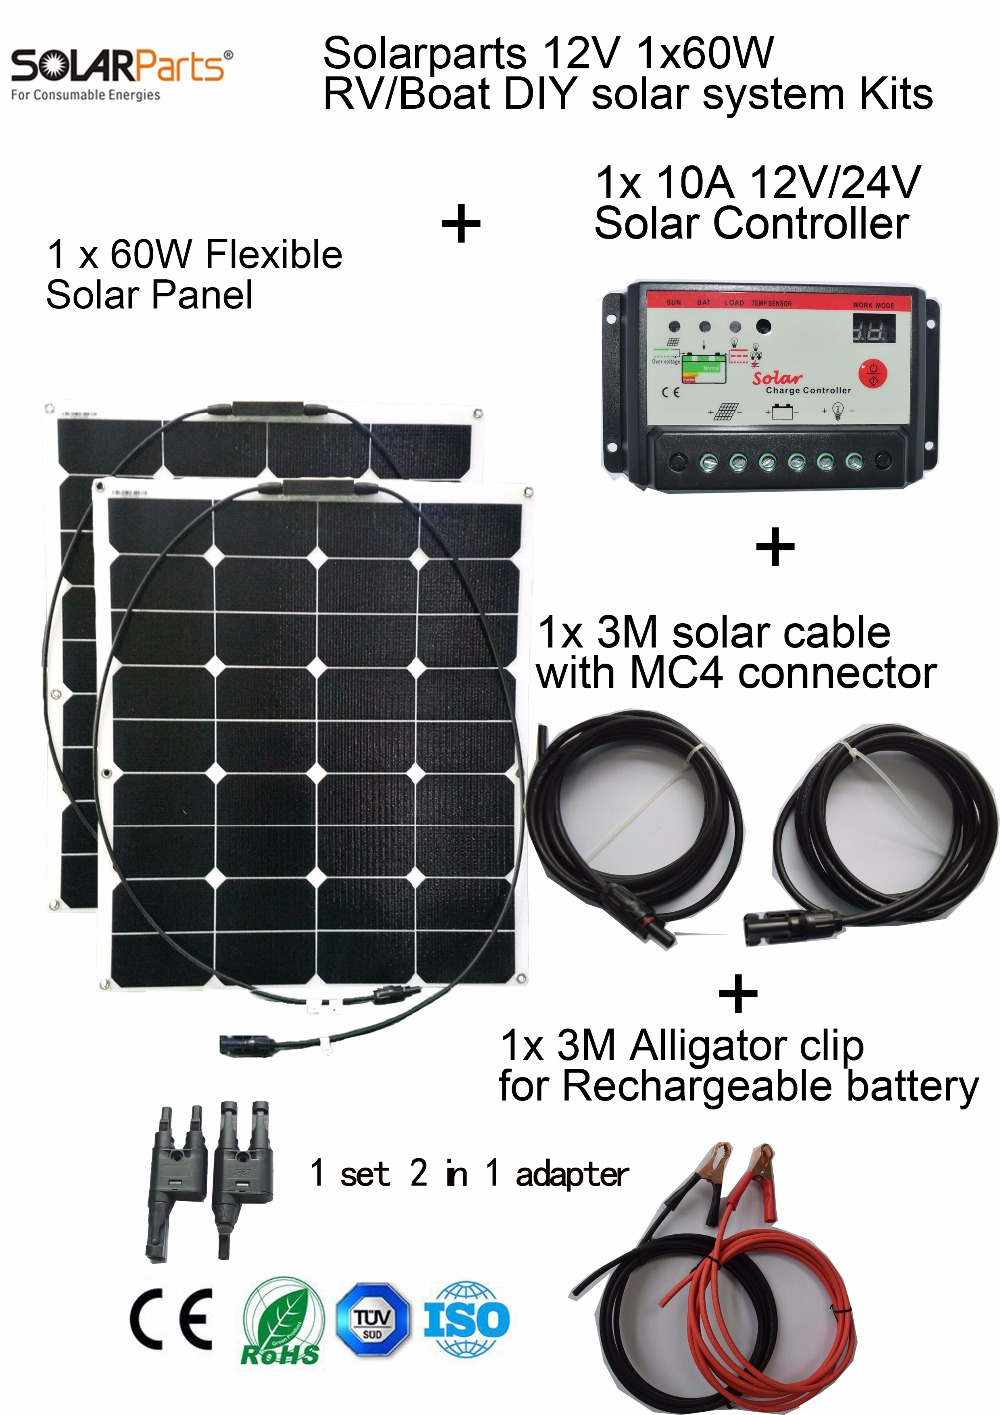 все цены на Boguang 2X60W ETFE flexible solar panel DIY RV/boat Kits system with 2x60 solar panel+1x10A controller+1set 3M MC4 cable & cilp. онлайн